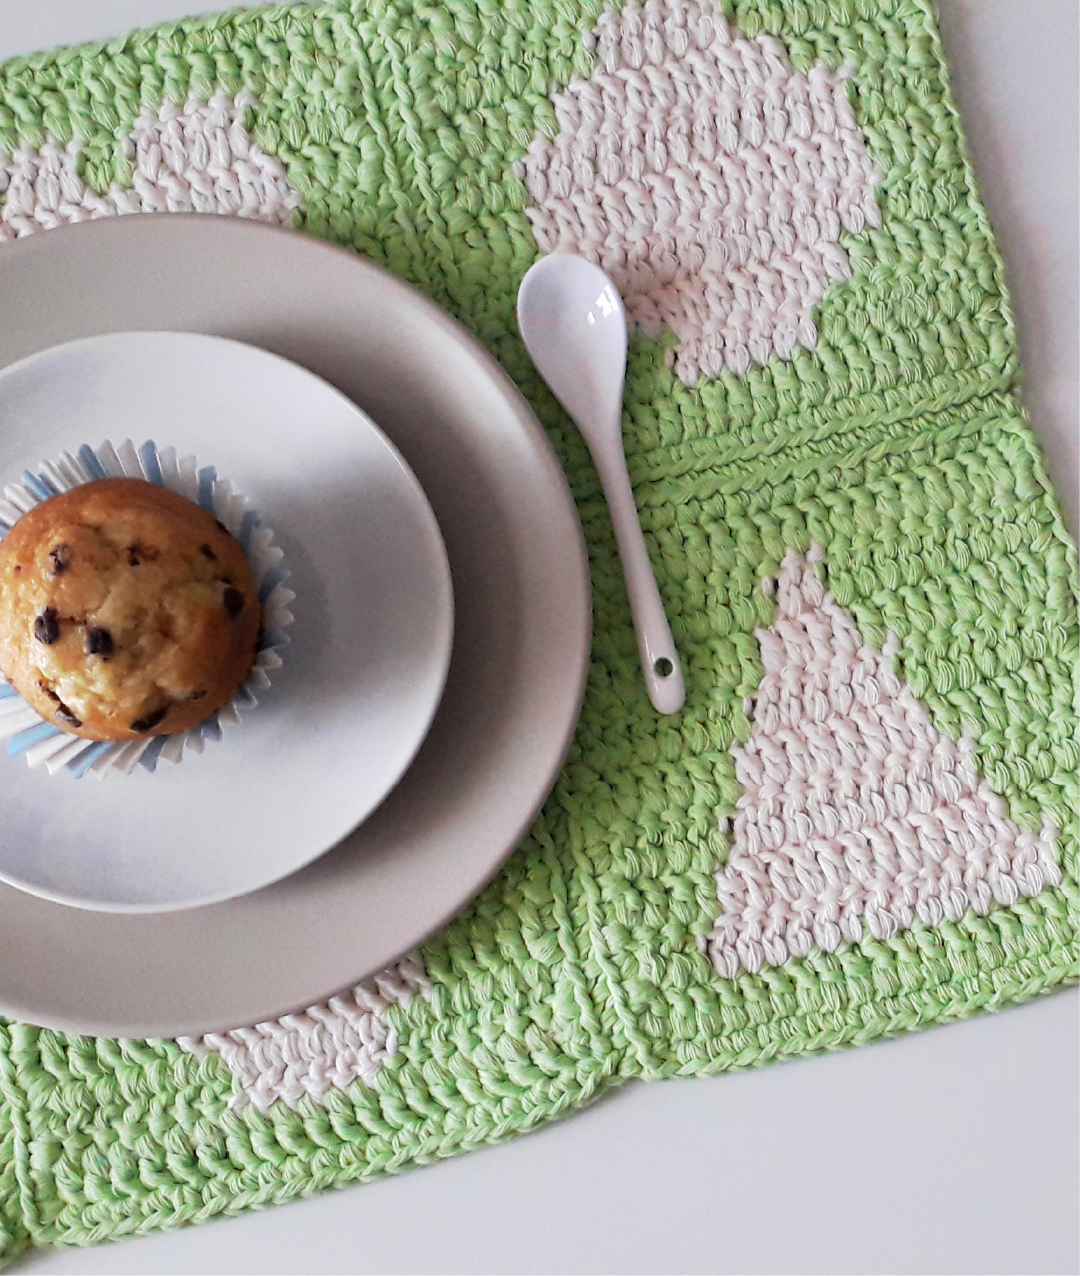 Bettaknit X Mara Fornasier - Homeware - BRITTA PLACEMATS - 1